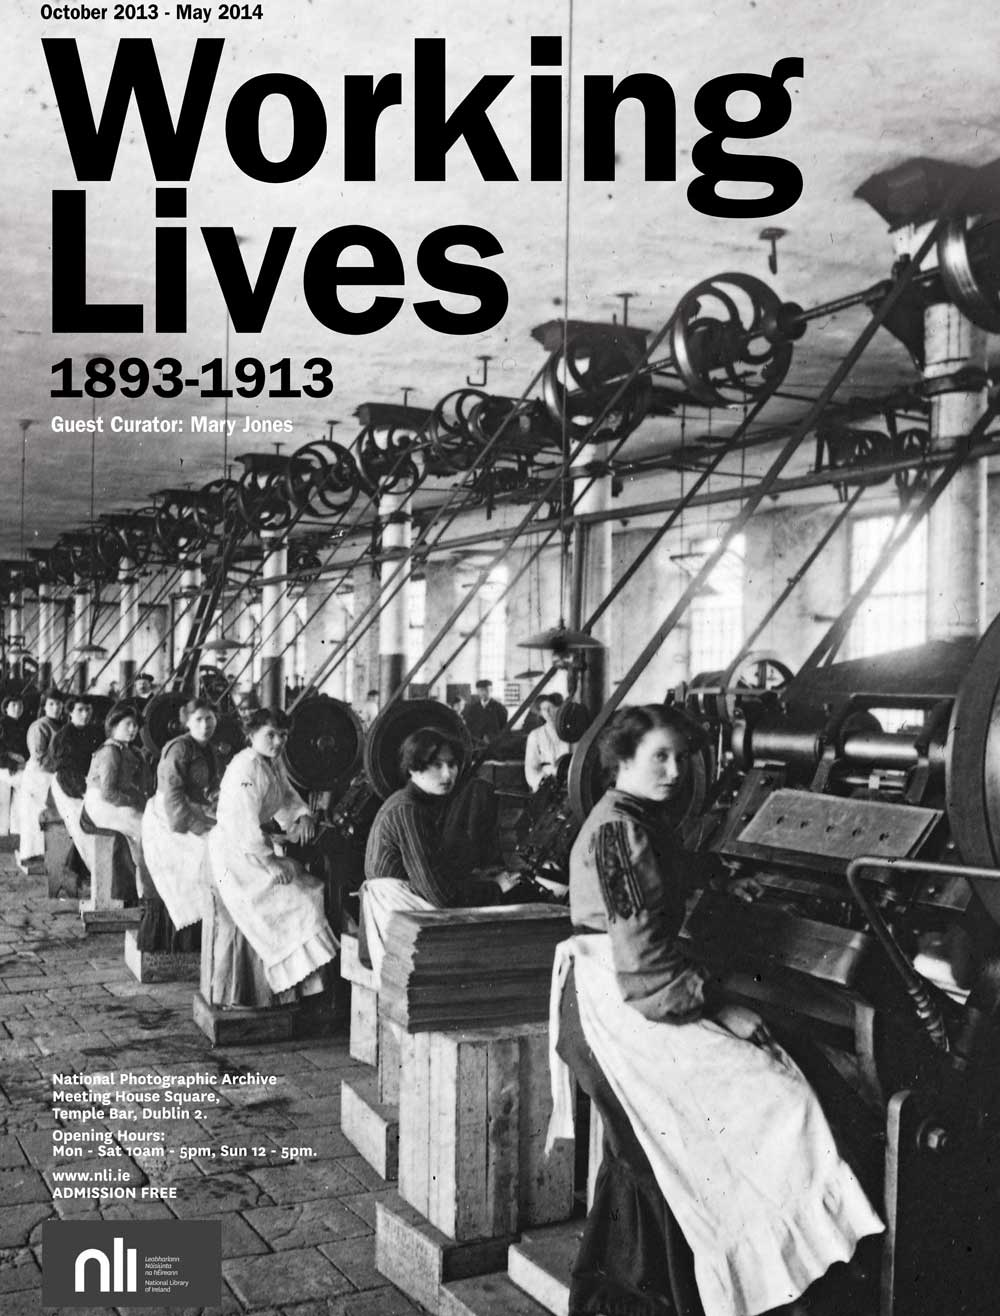 Working Lives, 1893-1913